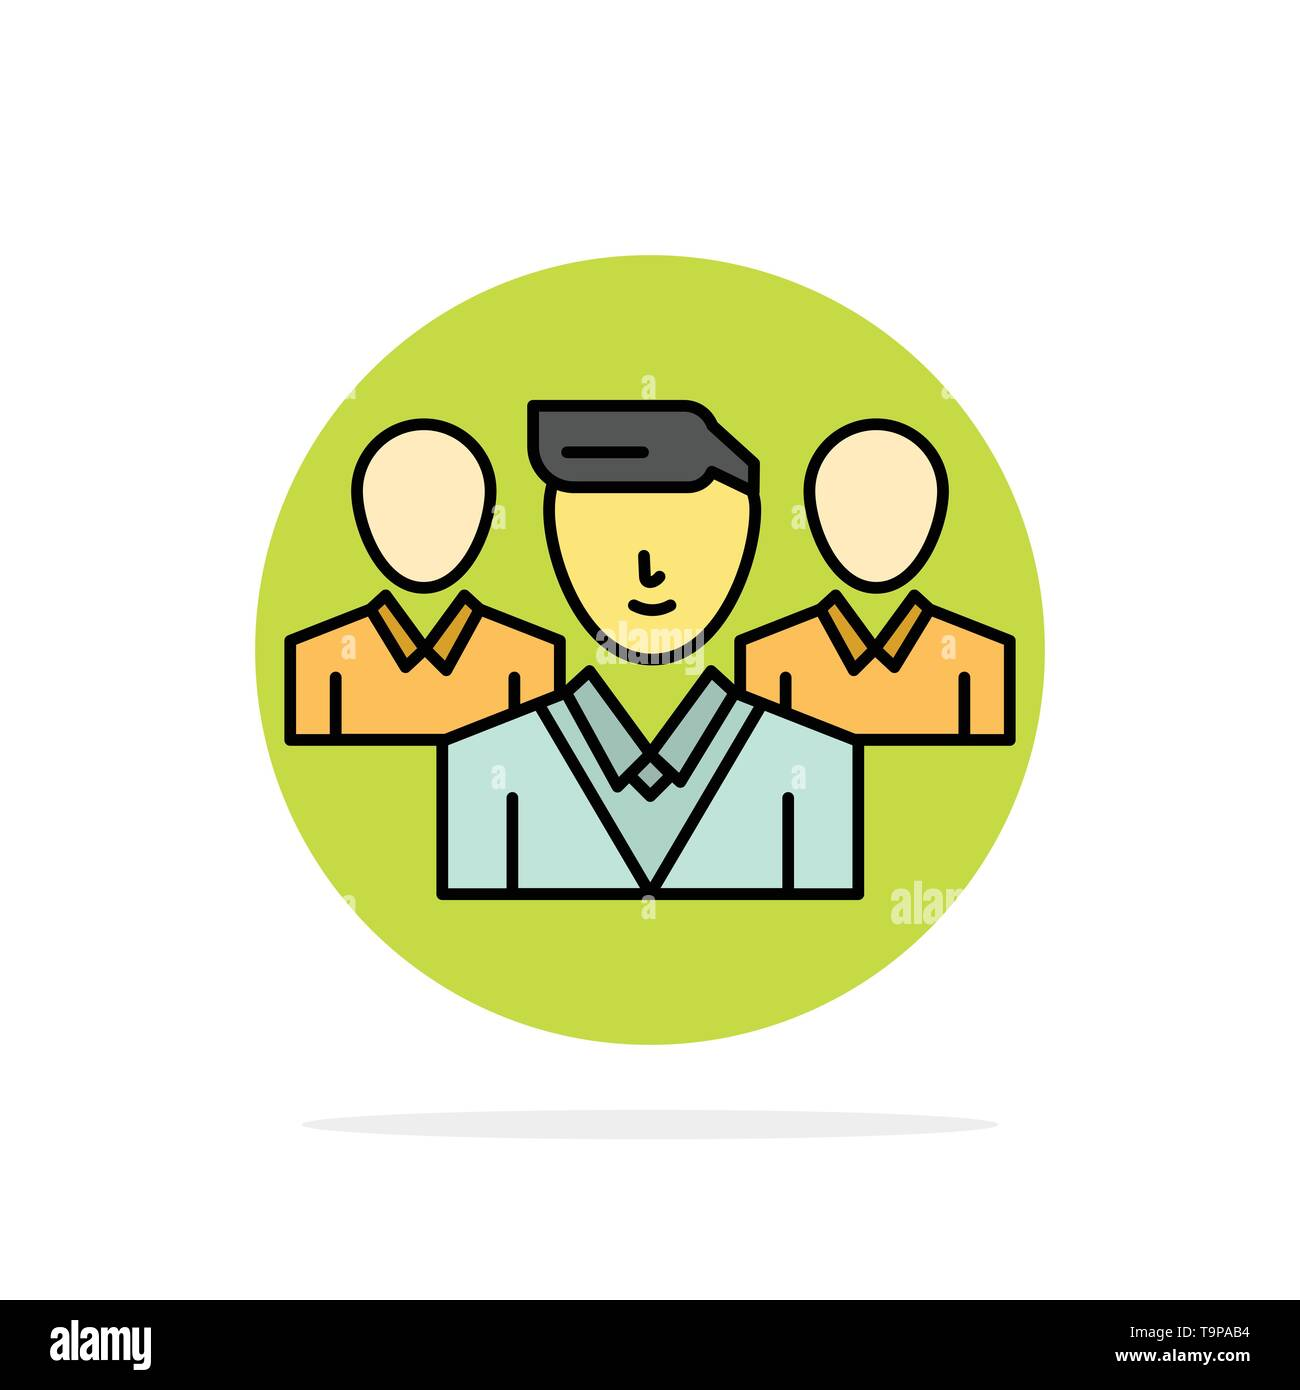 Staff, Security, Friend zone, Gang Abstract Circle Background Flat color Icon - Stock Image